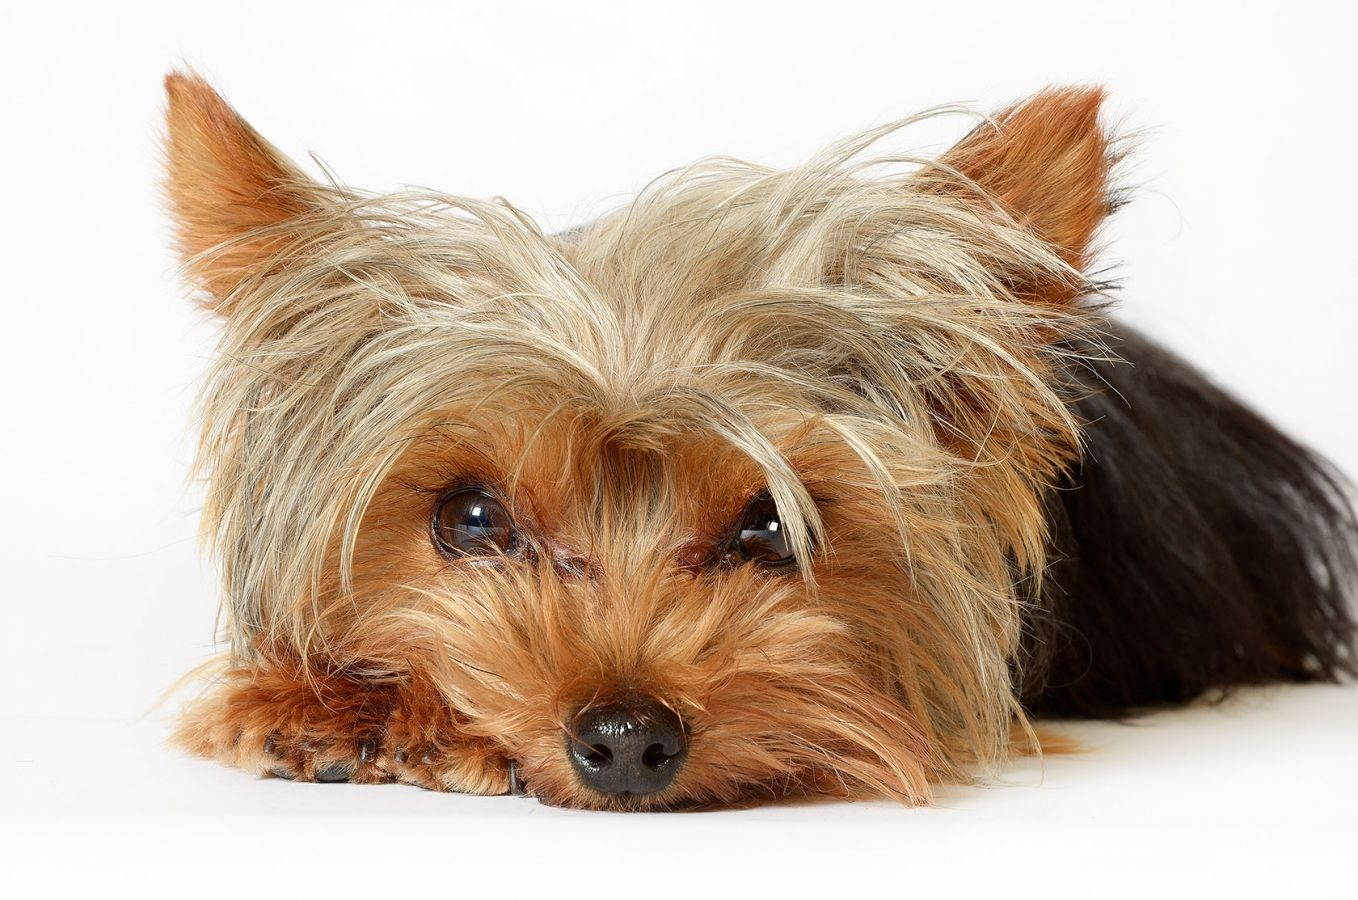 A Yorkshire Terrier photographed against a white paper half-roll backdrop. Photo by John Robertson.